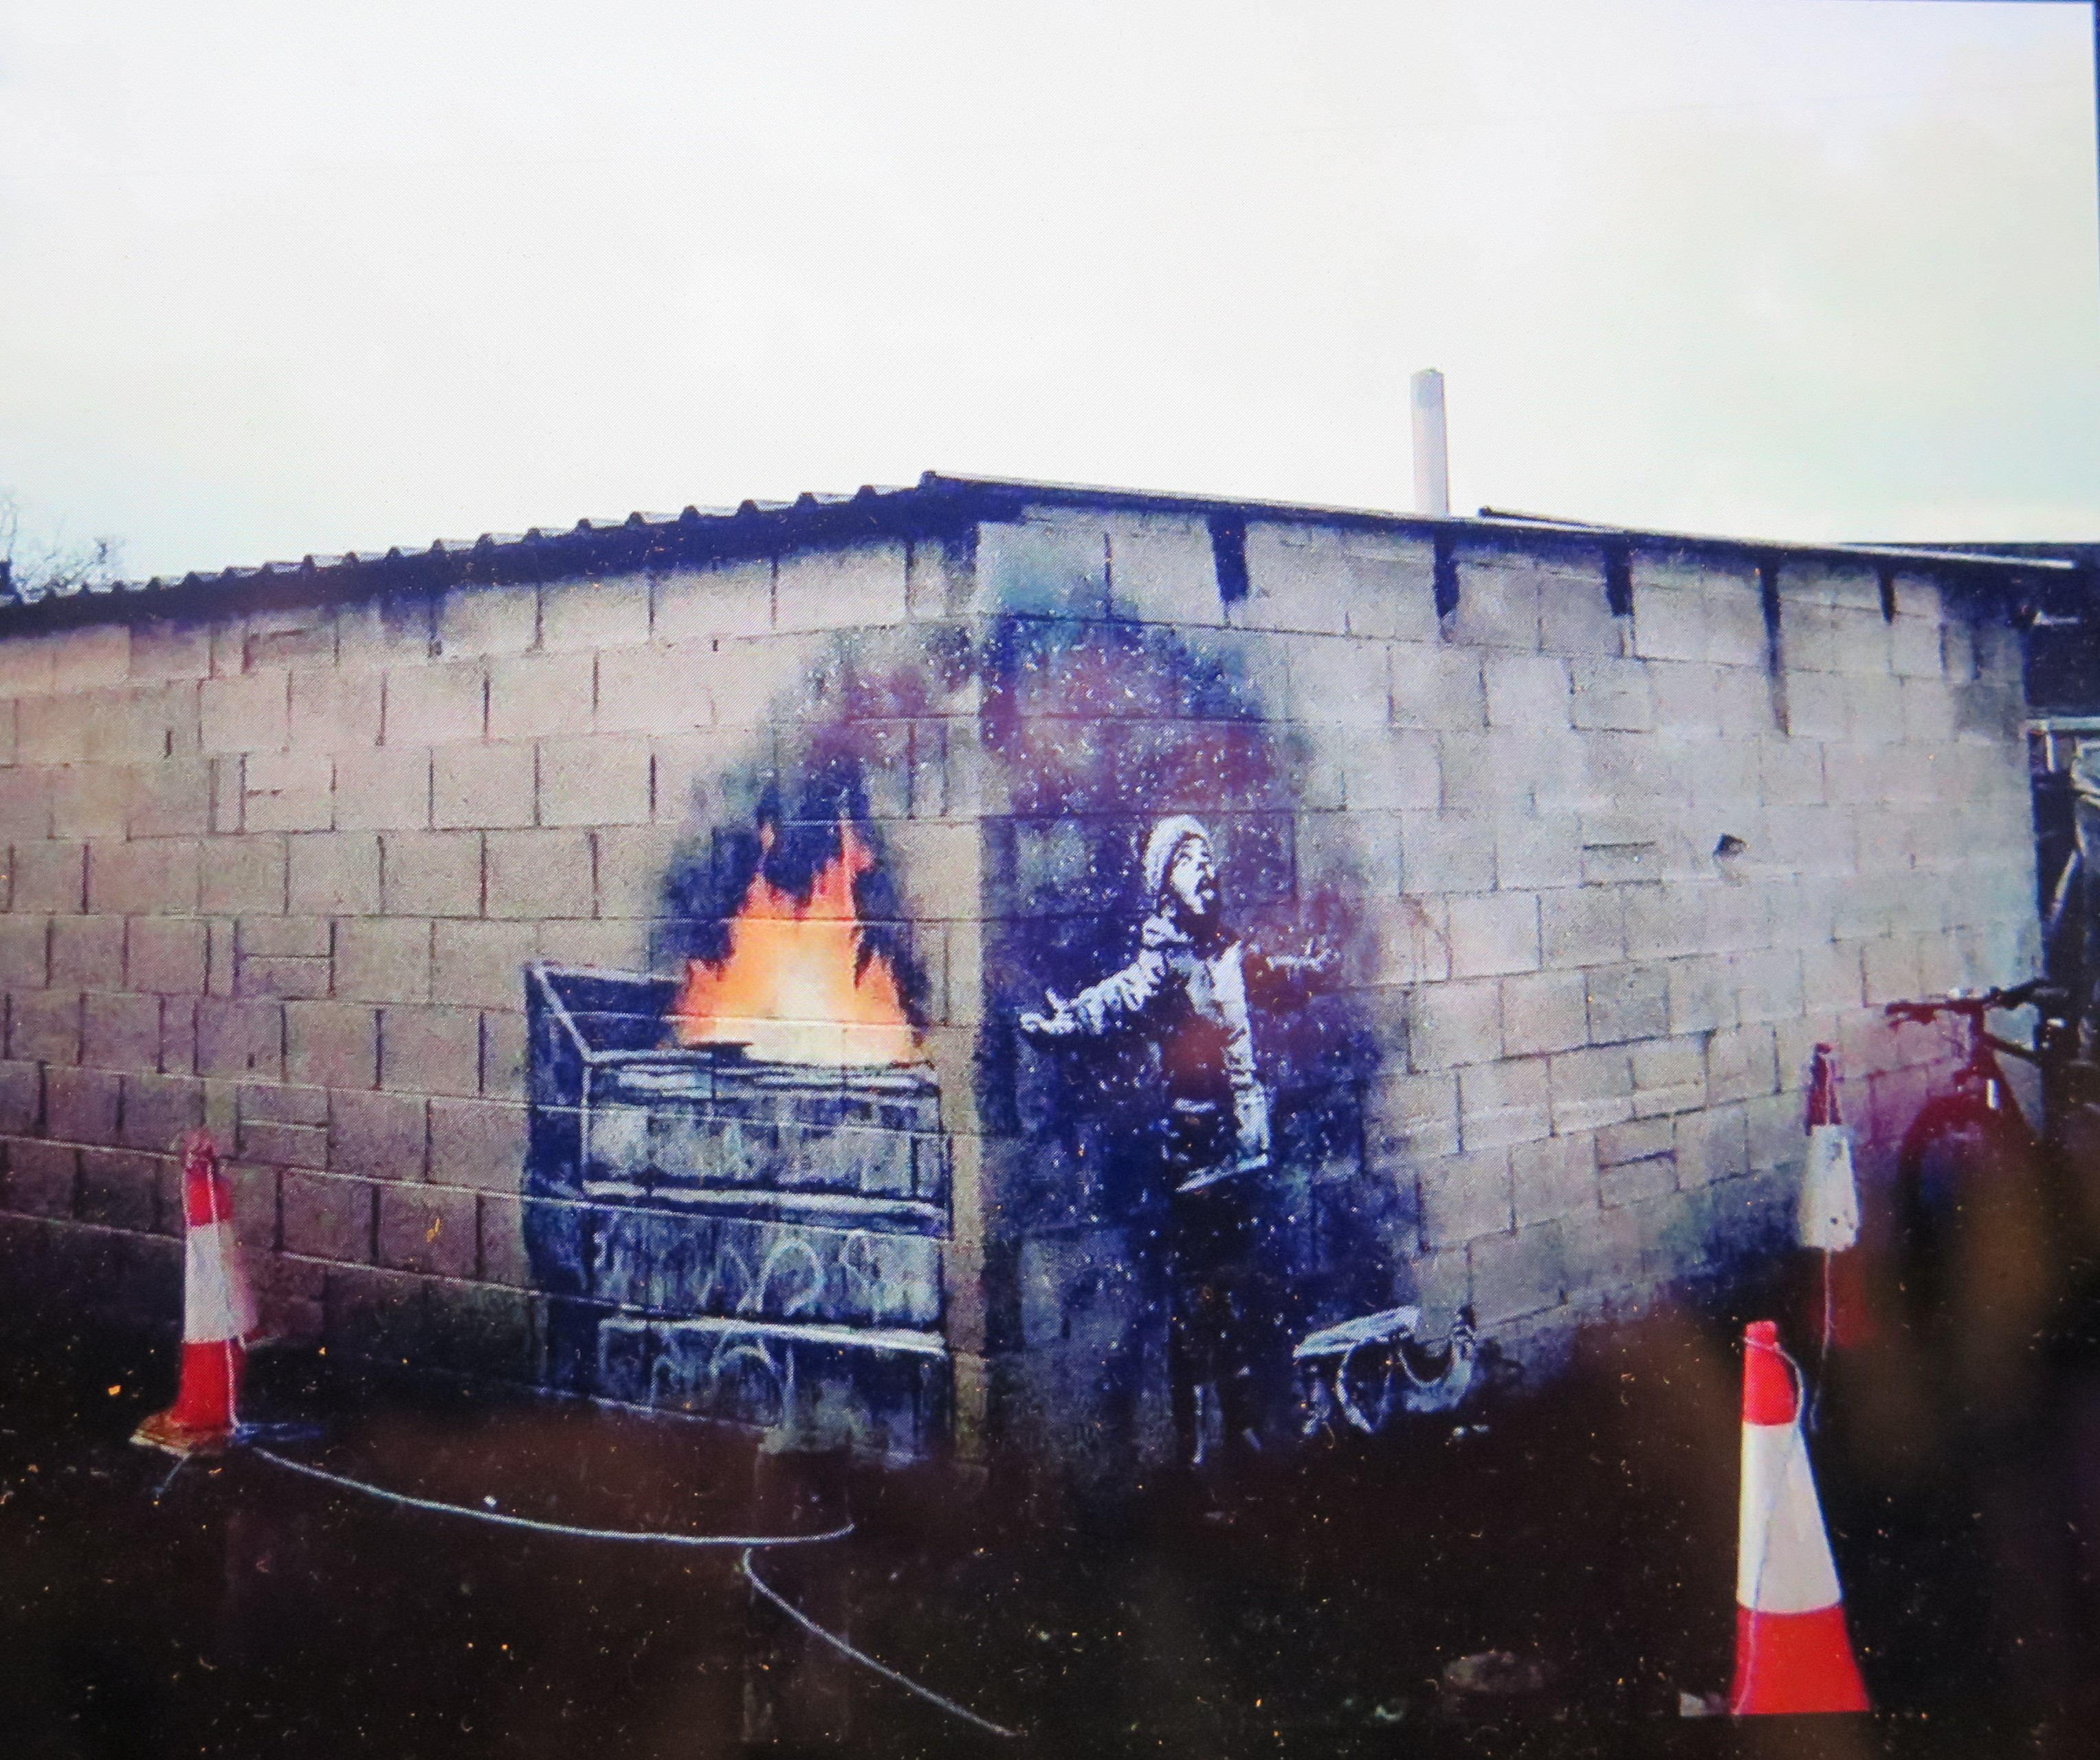 Seasons Greetings, Banksy, Port Talbot, Wales, UK, John Brandler, Banksy Most Wanted, Aurélia Rouvier and Seamus Haley